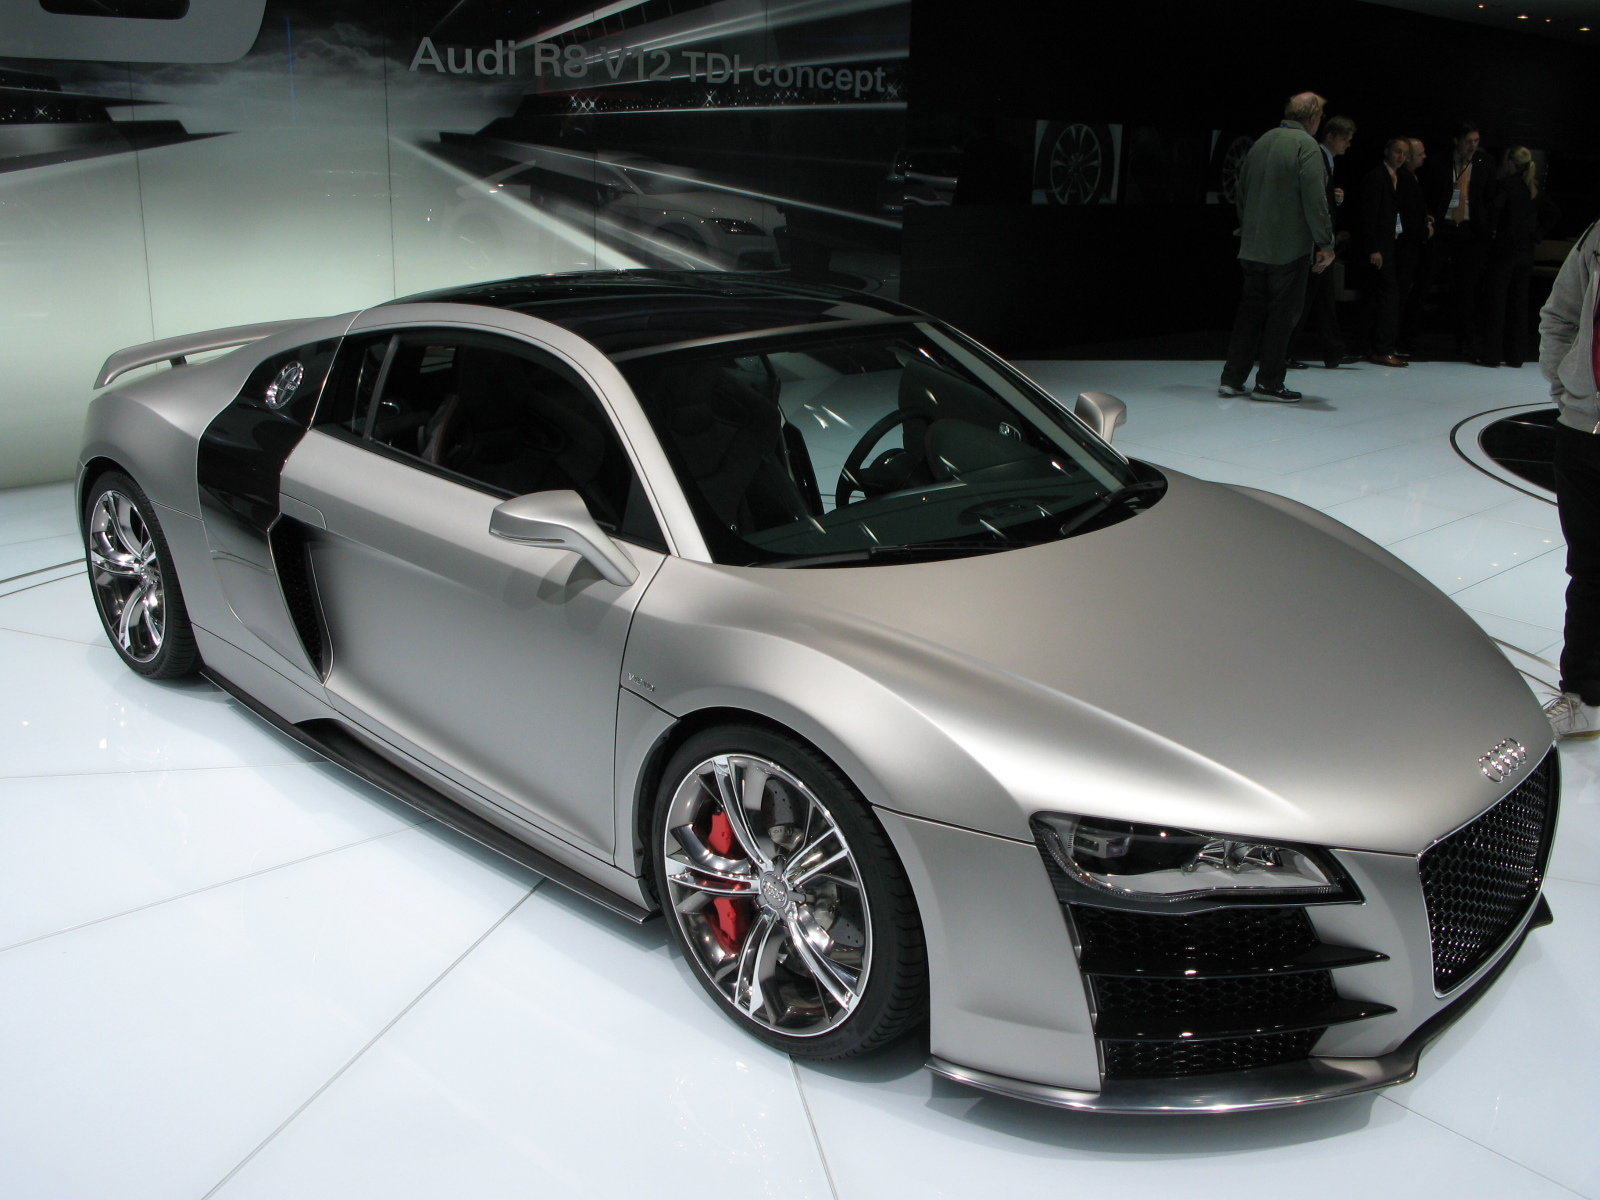 2008 audi r8 v12 tdi related infomation,specifications - weili